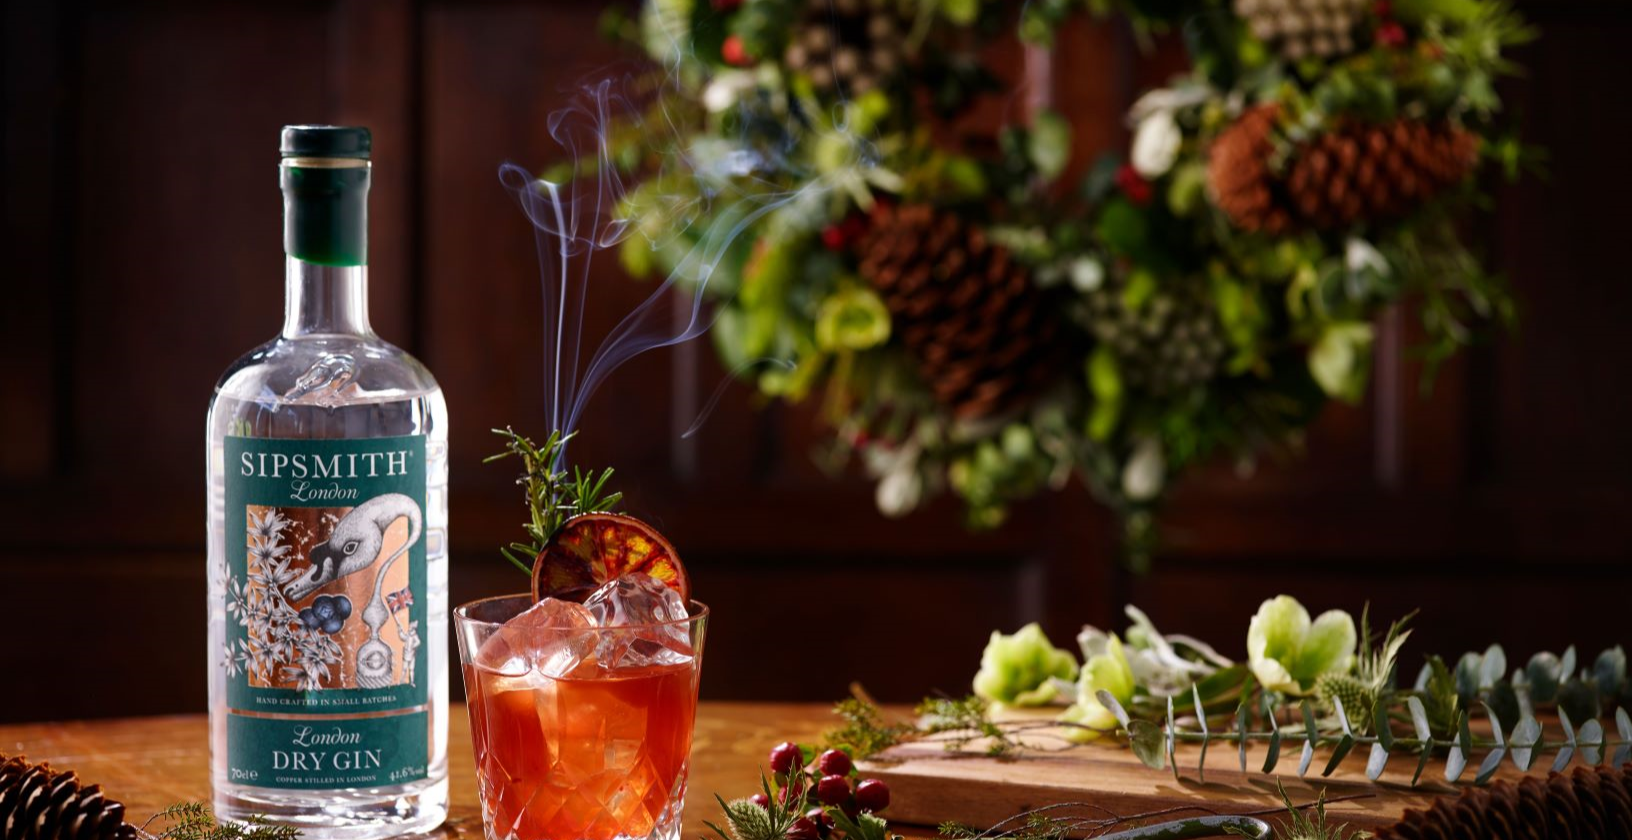 Botanical Wreathmaking & Festive Sipsmith Gin Cocktails